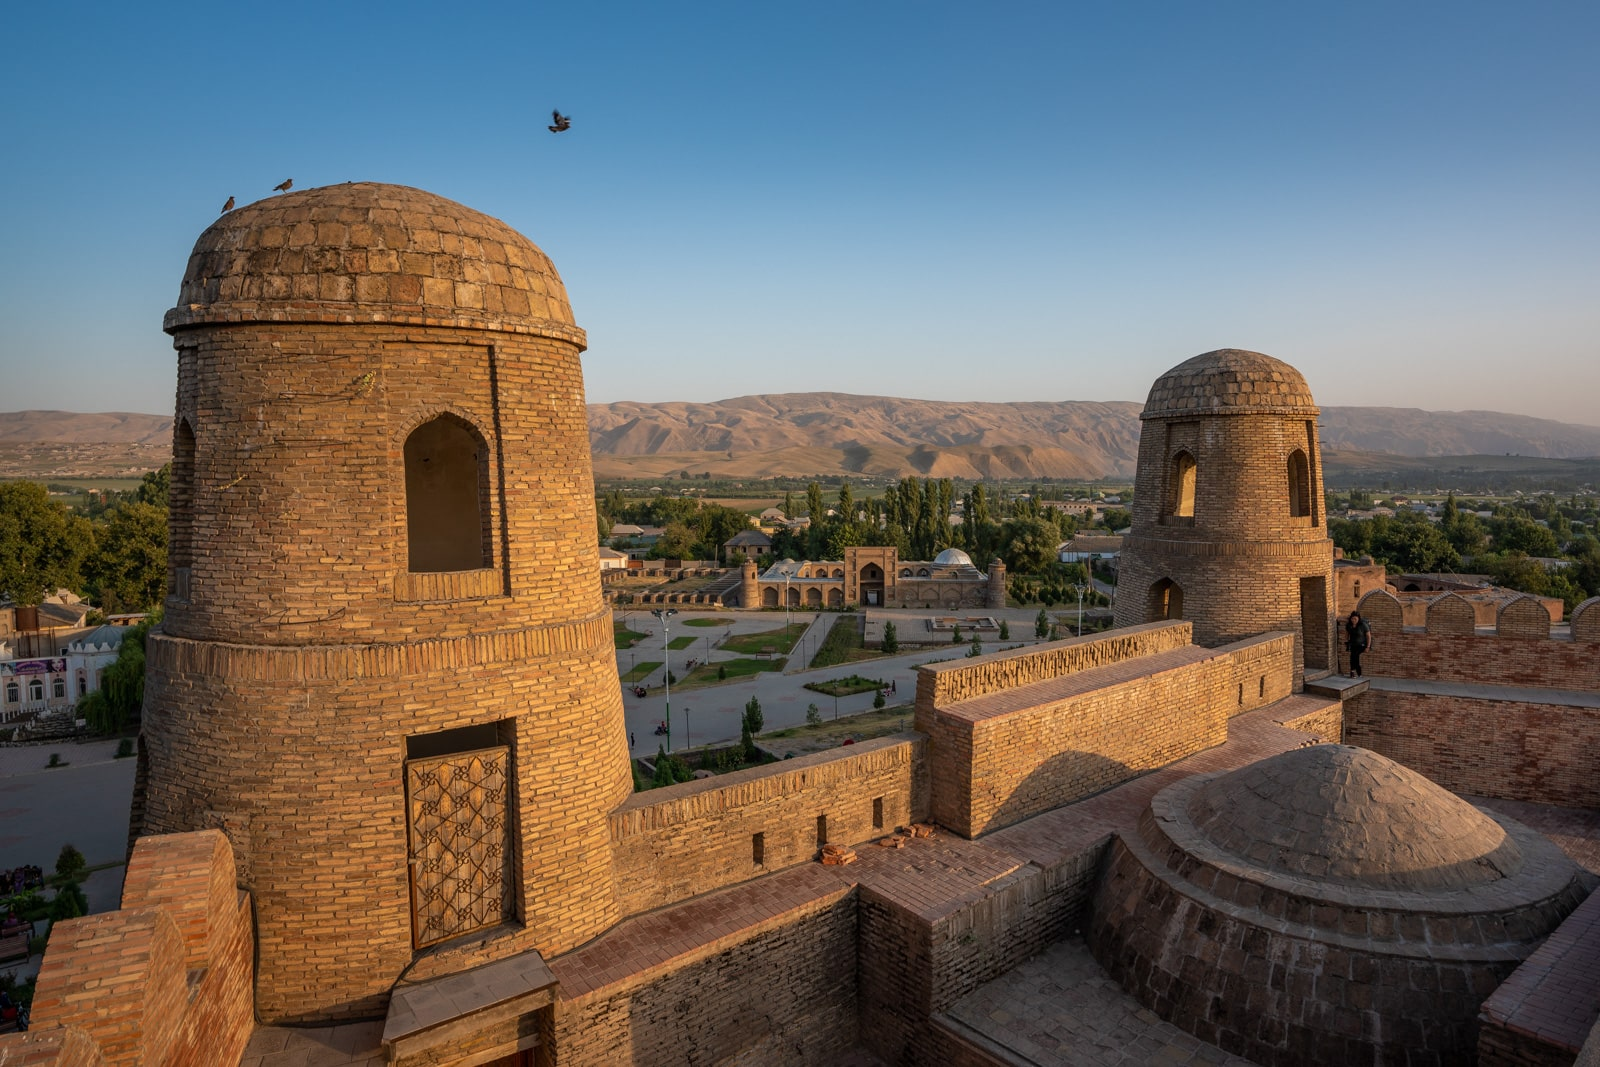 View from Hissar Fort in Dushanbe, Tajikistan at sunset